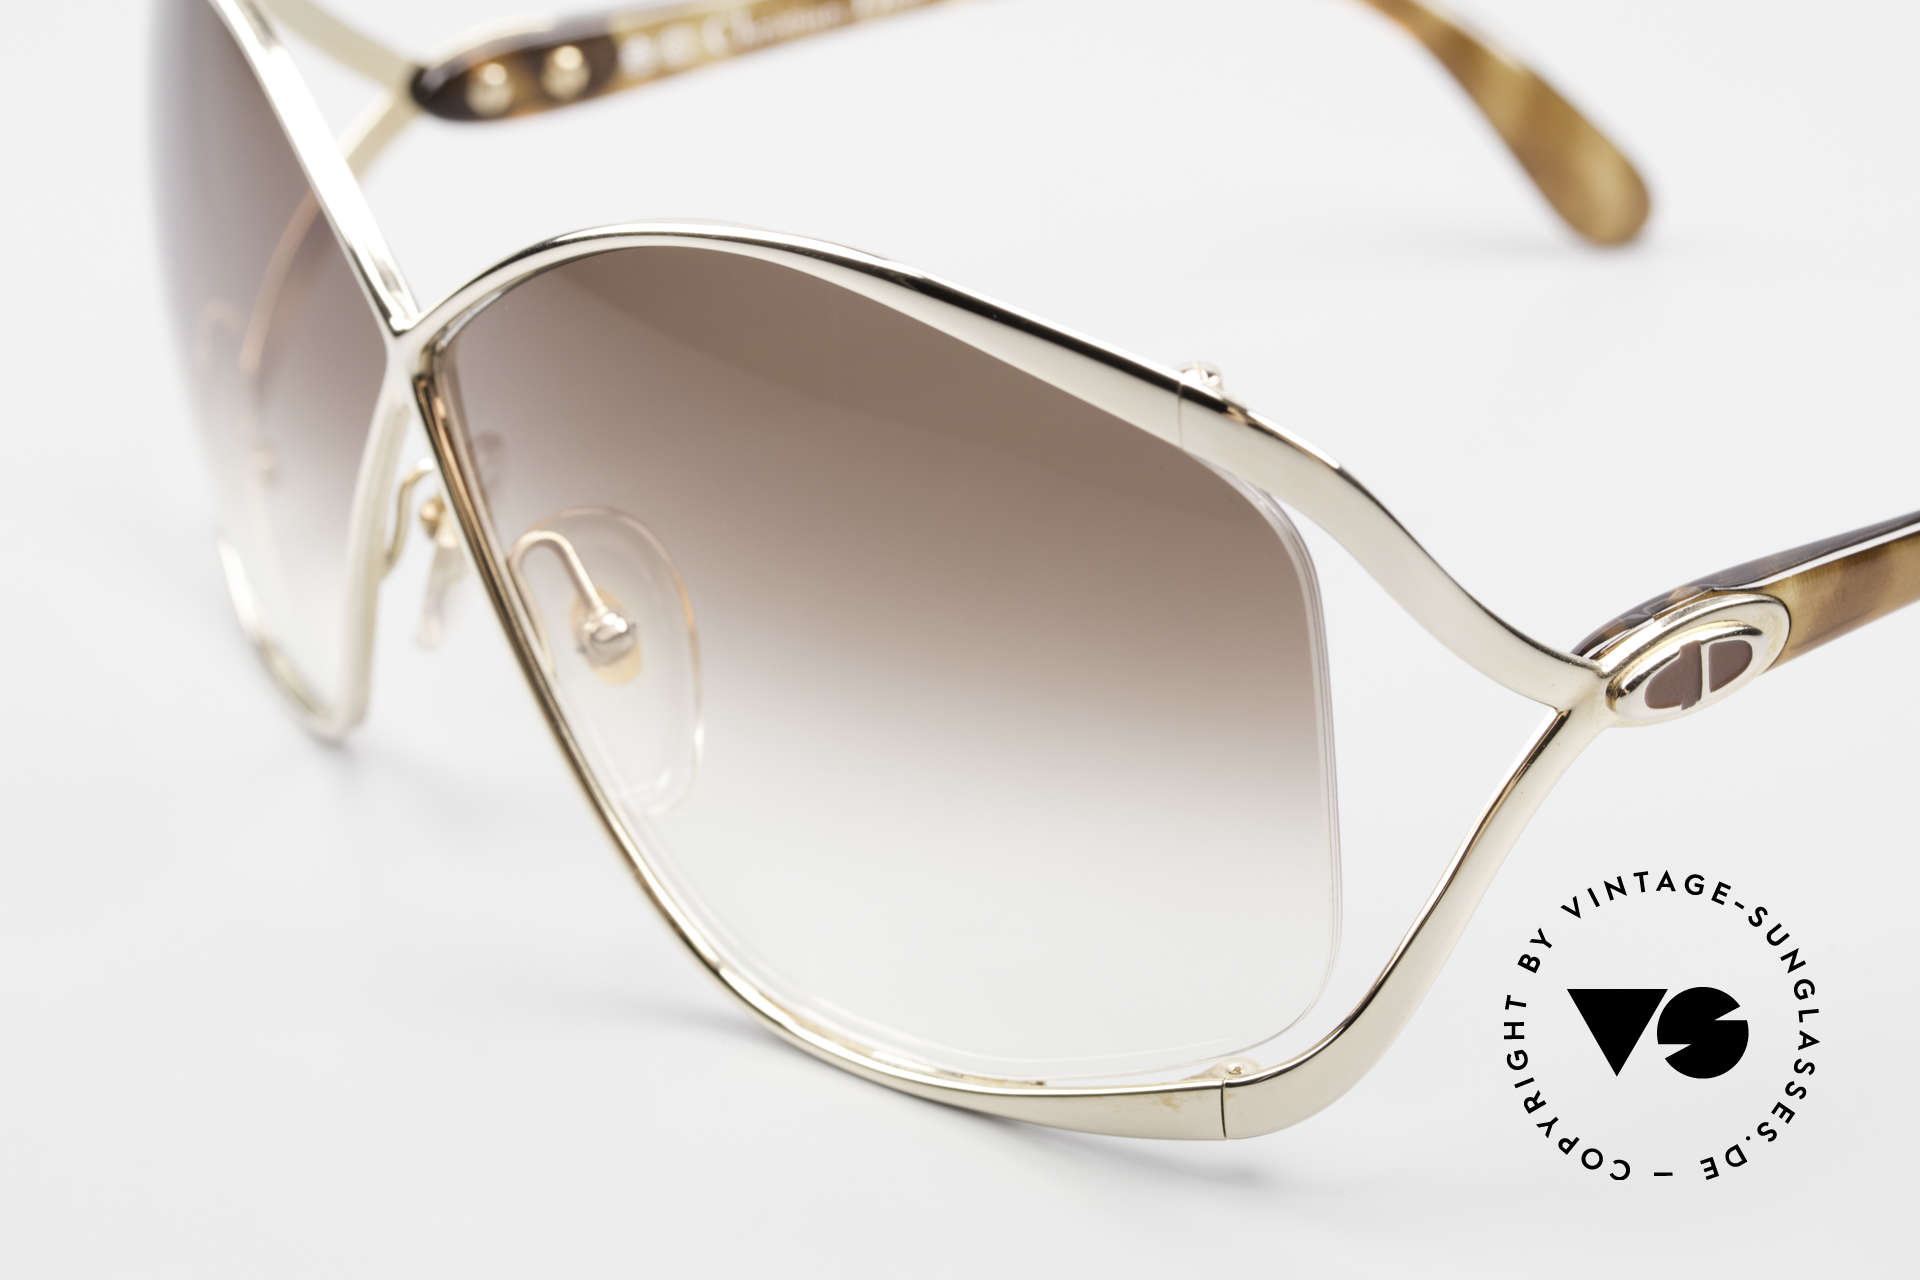 Christian Dior 2056 80's Butterfly Sunglasses, golden frame with brown-gradient lenses (100% UV), Made for Women